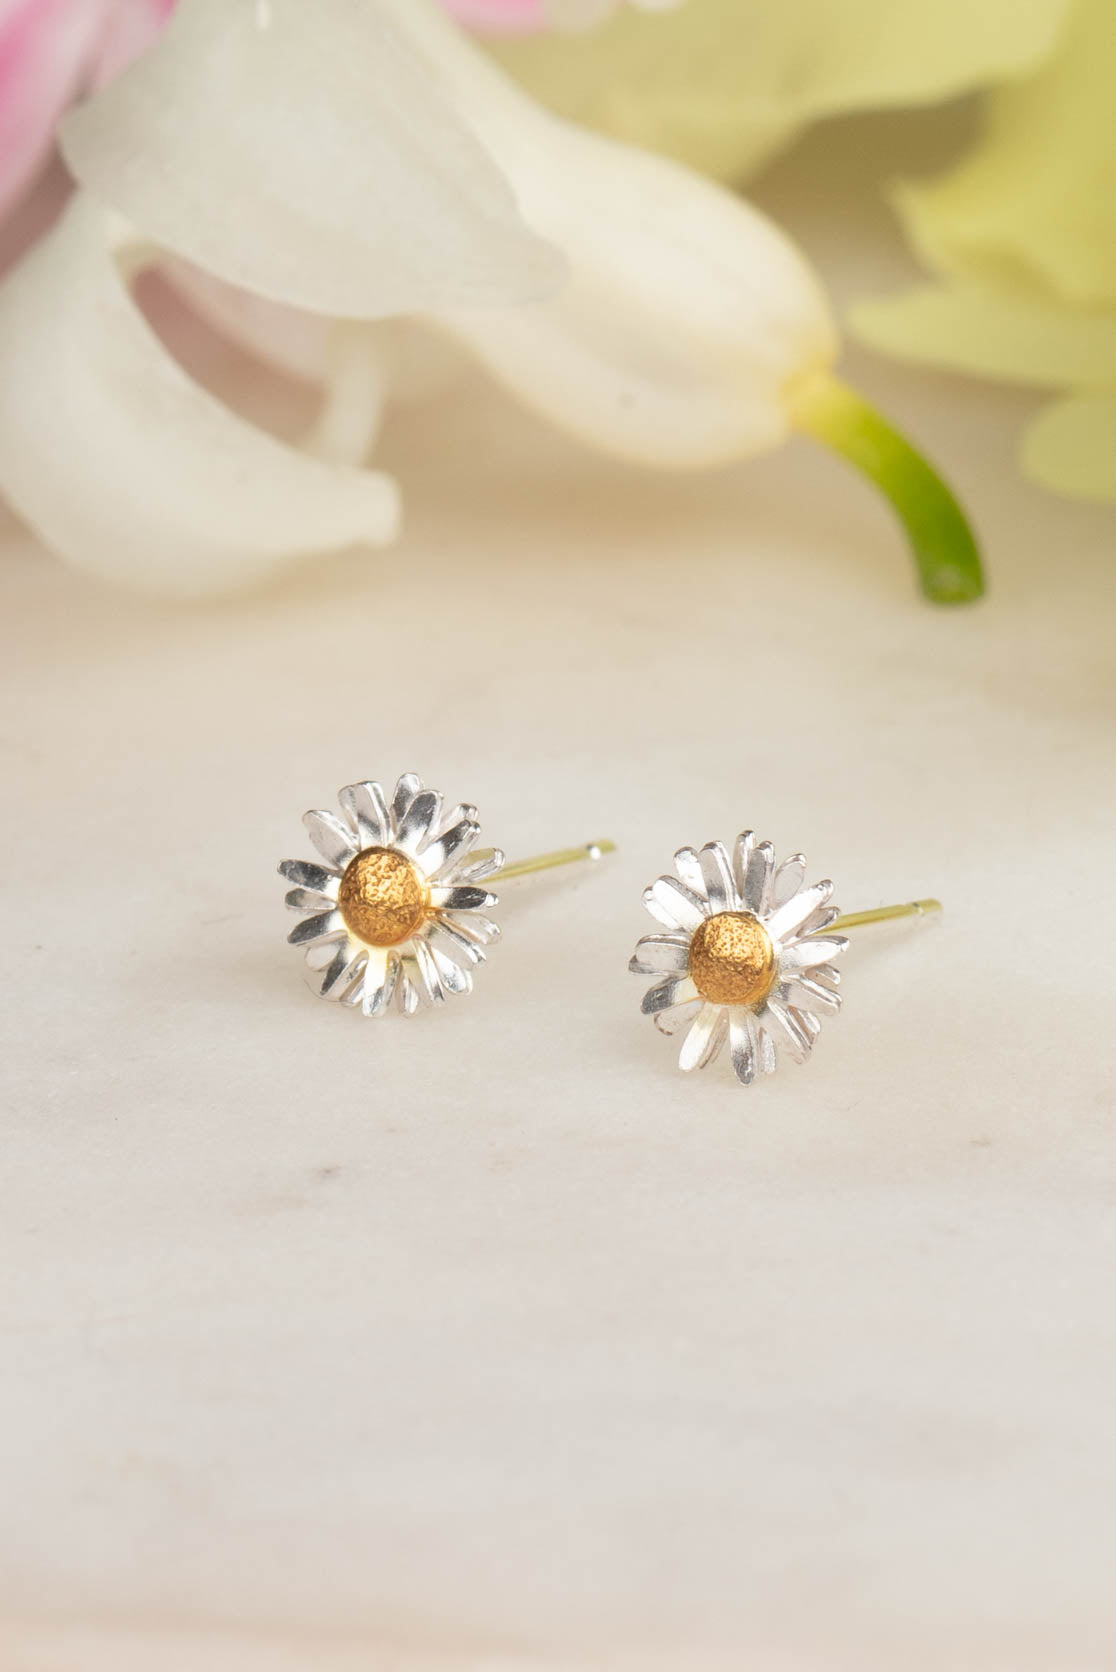 Sterling Silver and Gold Daisy Earrings - Daisy Flower Stud